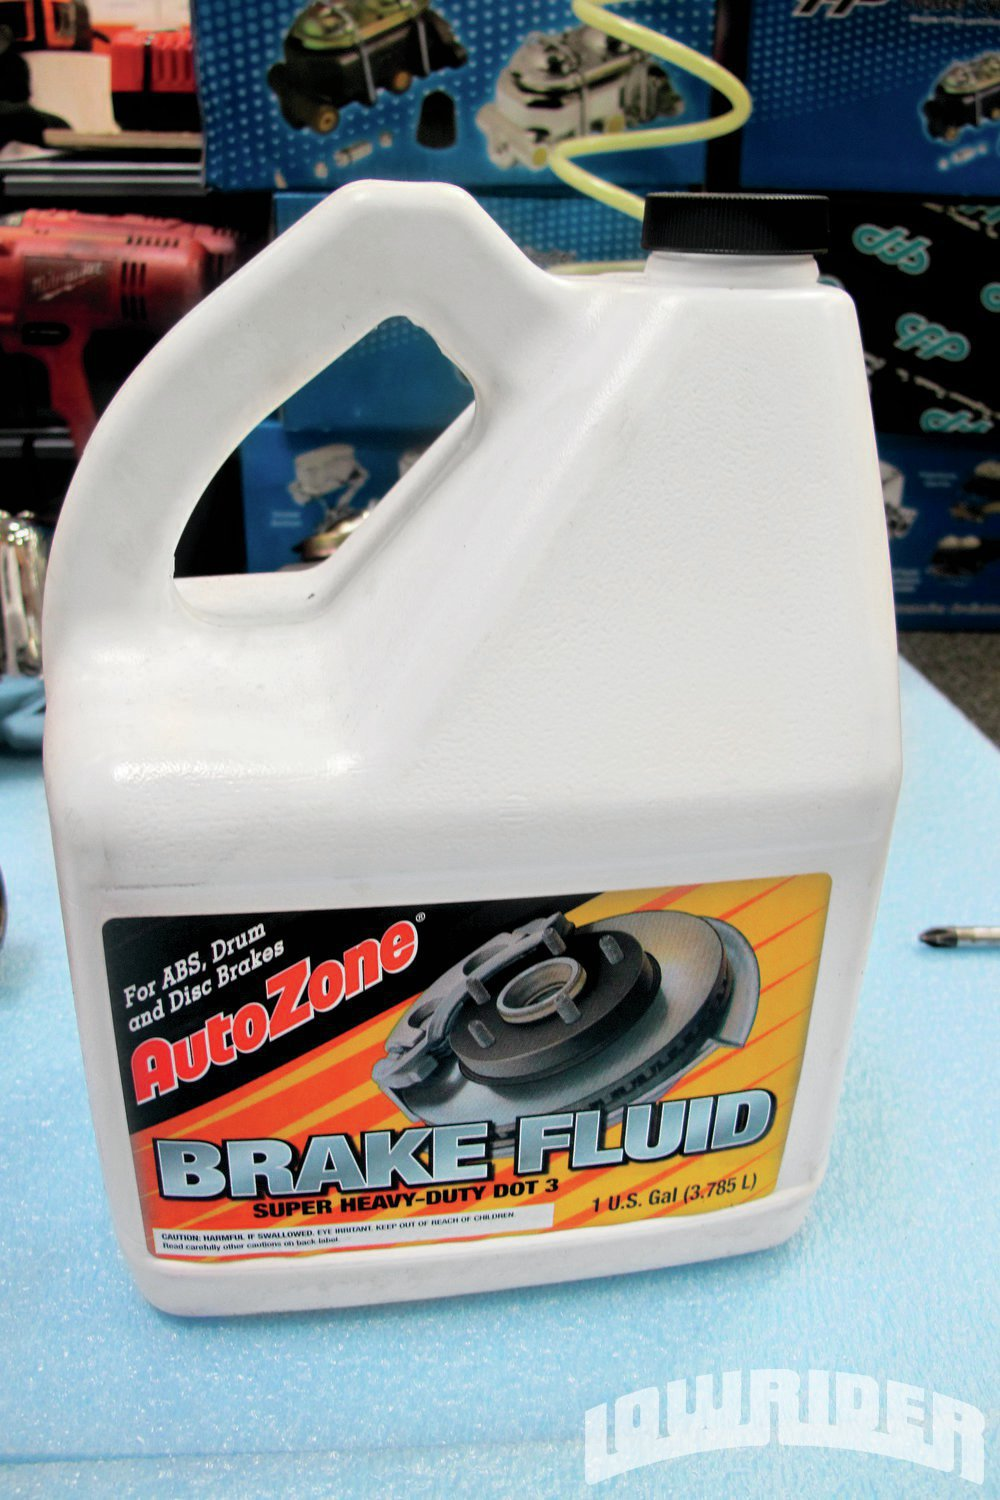 <strong>8</strong>. CPP recommended that we use DOT 3 brake fluid for the braking system on our vehicle.